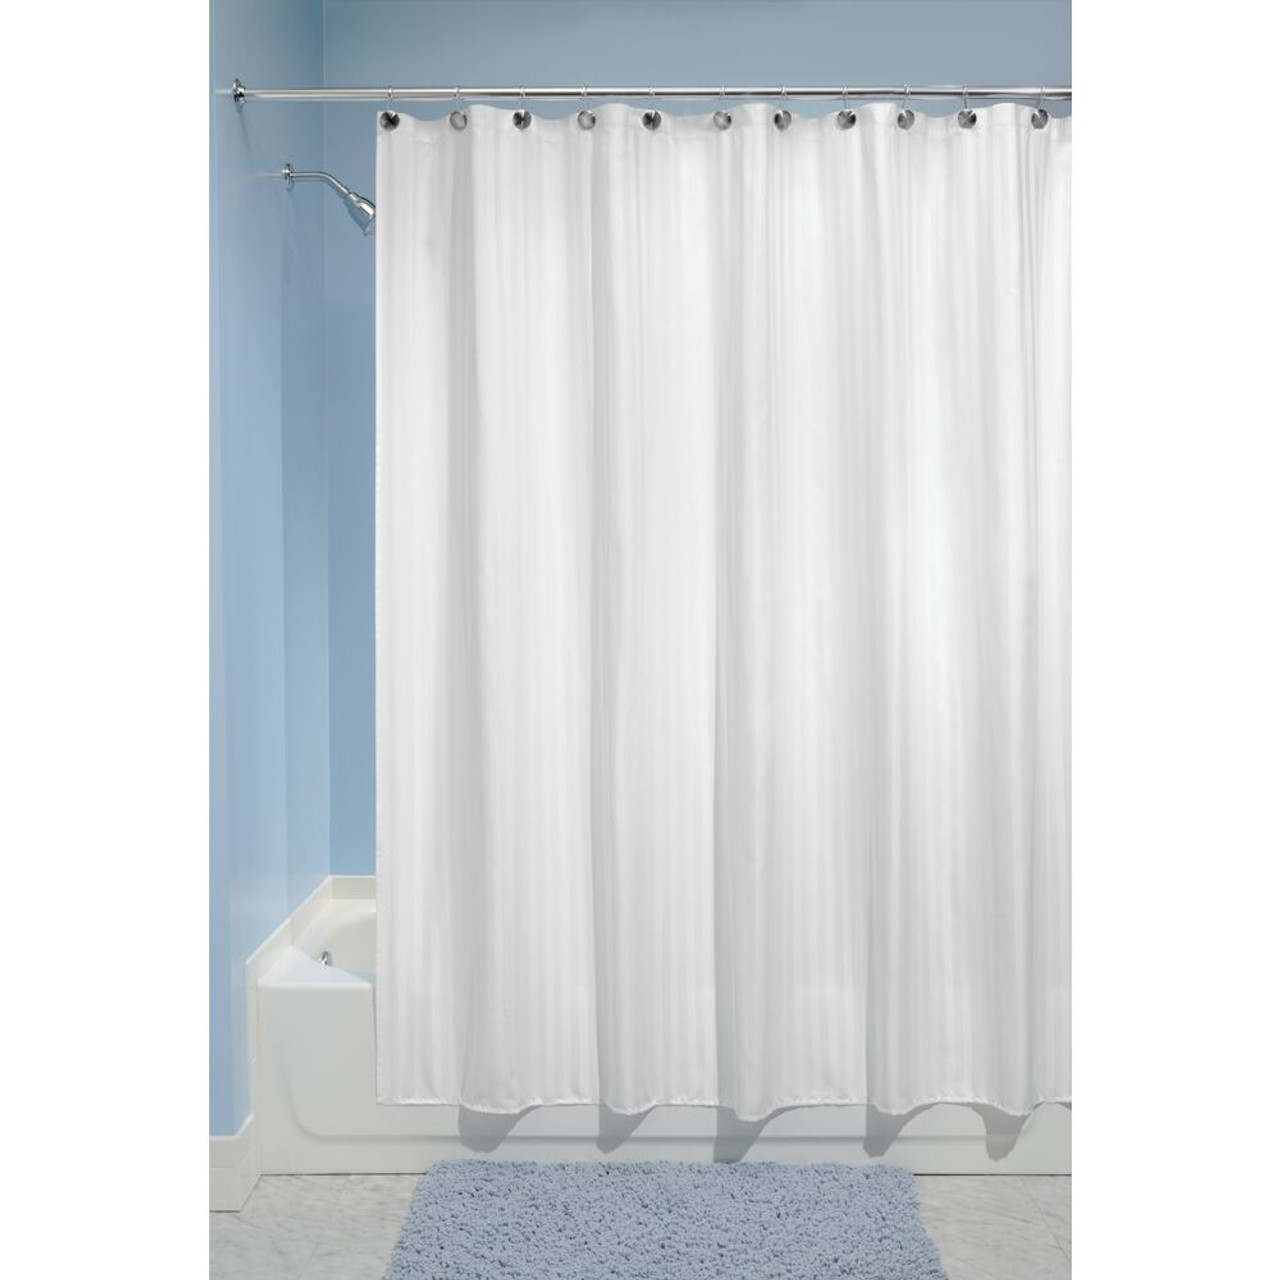 water repellent fabric shower curtain liner 72 x 84 white